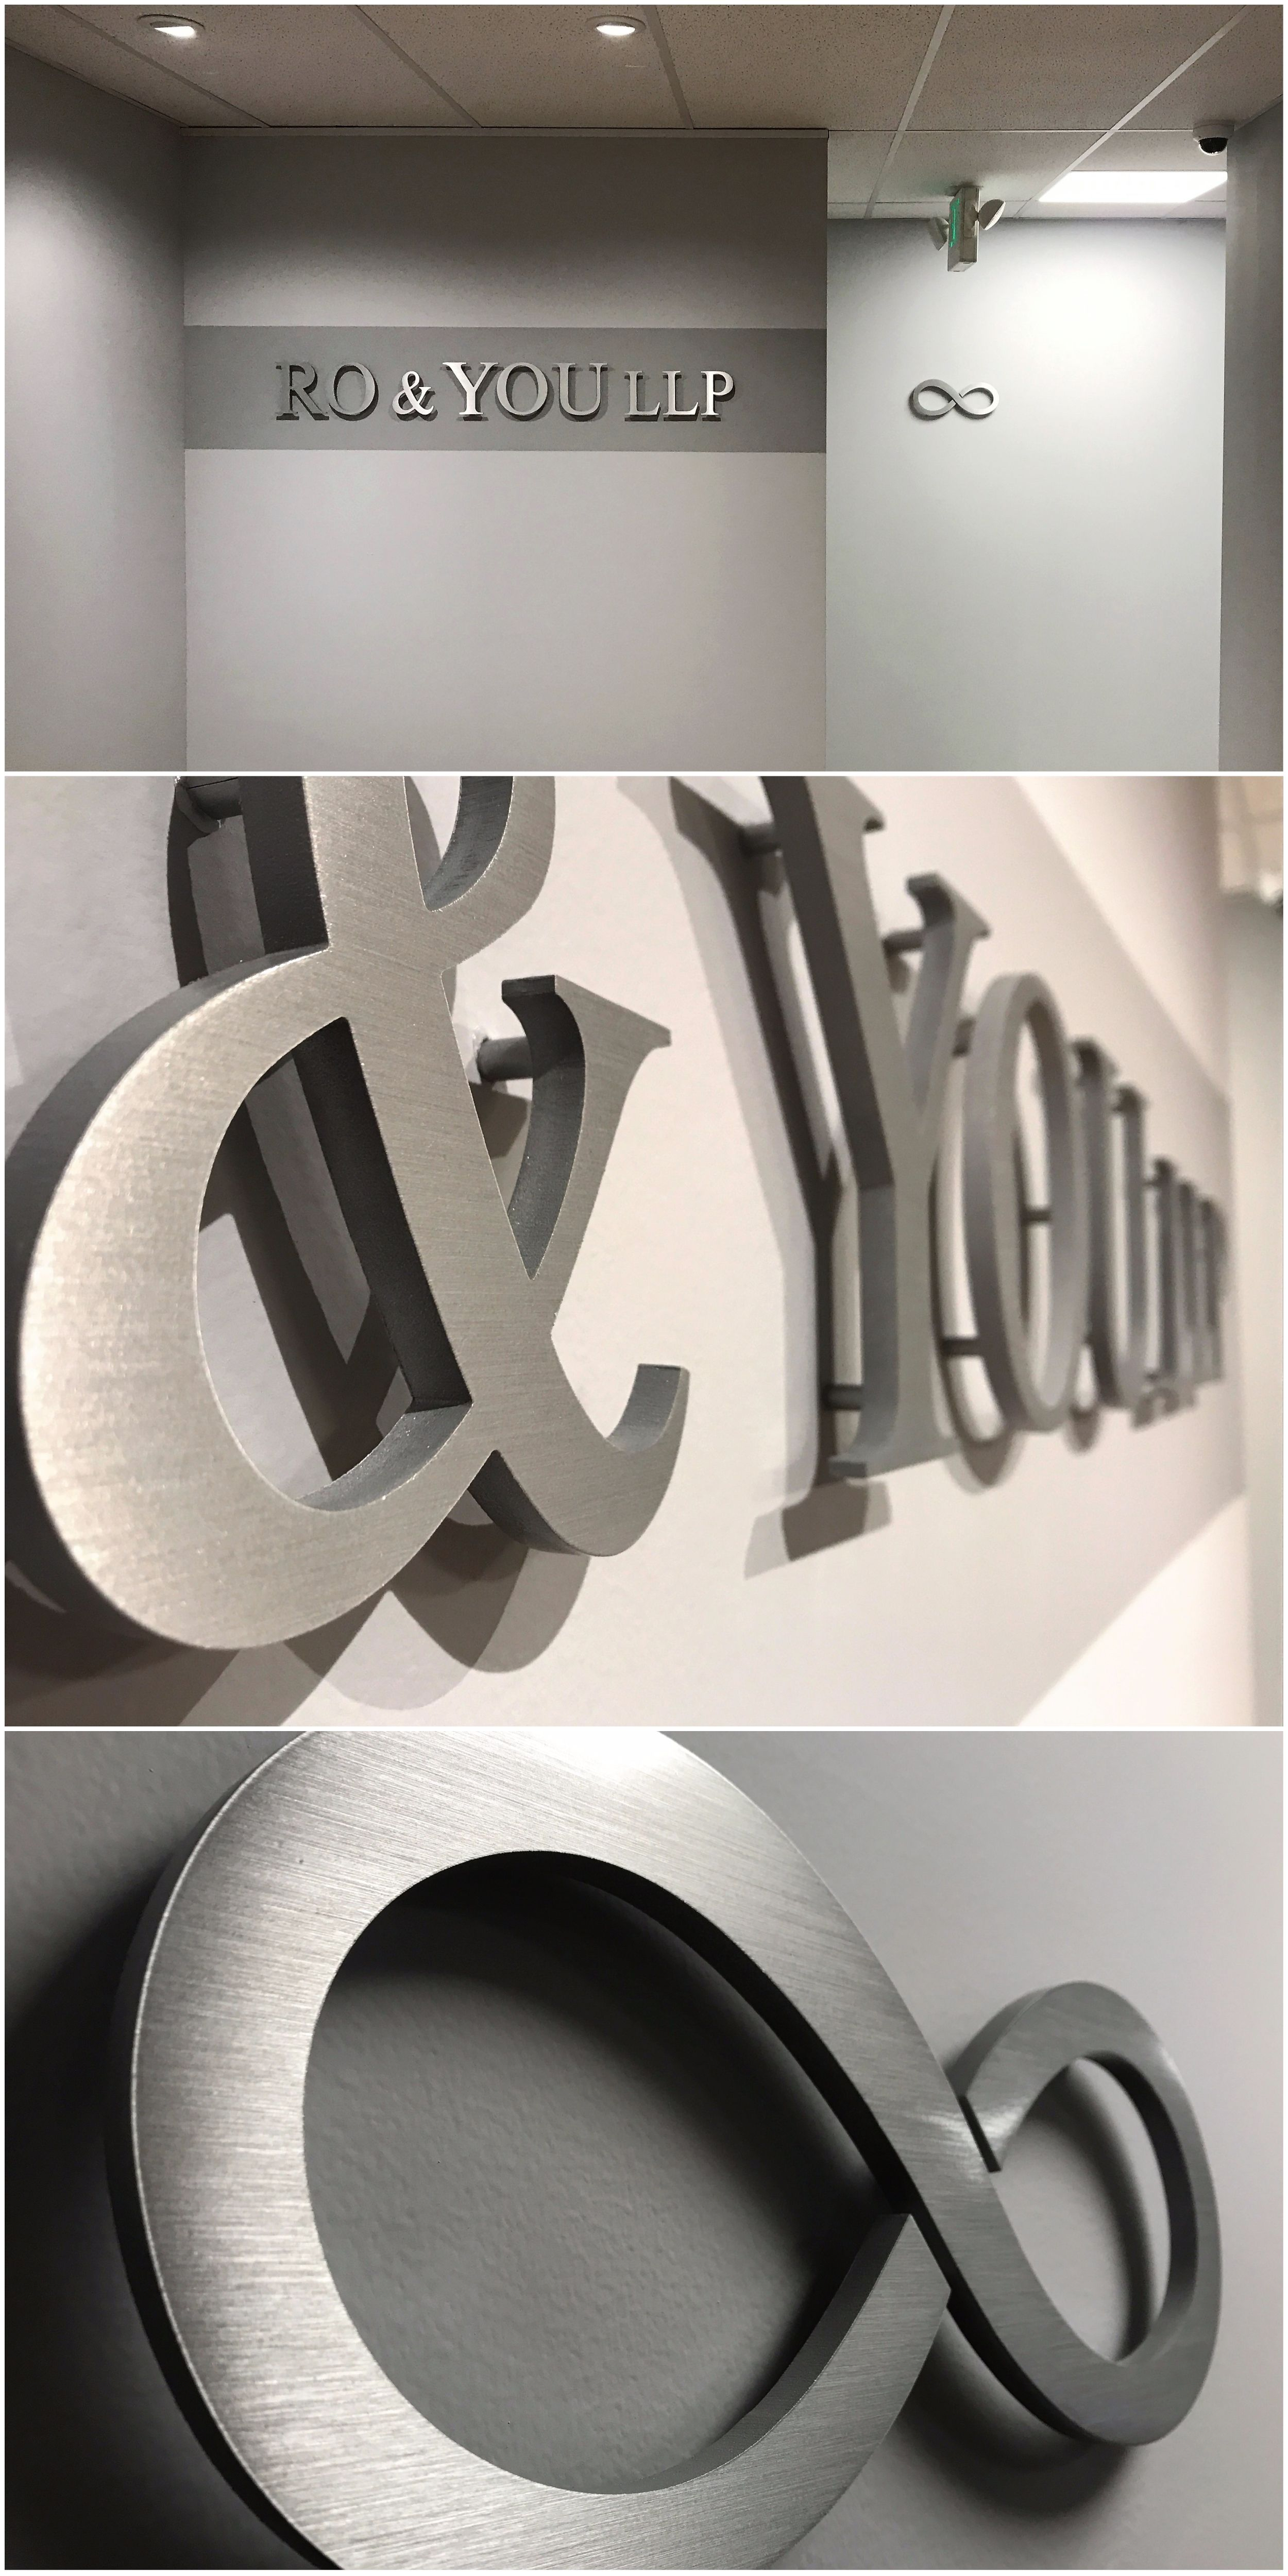 Brushed Aluminum Sign For Law Office In Sherman Oaks Ca Ro You Llp Lobby Sign Store Signage Aluminum Signage